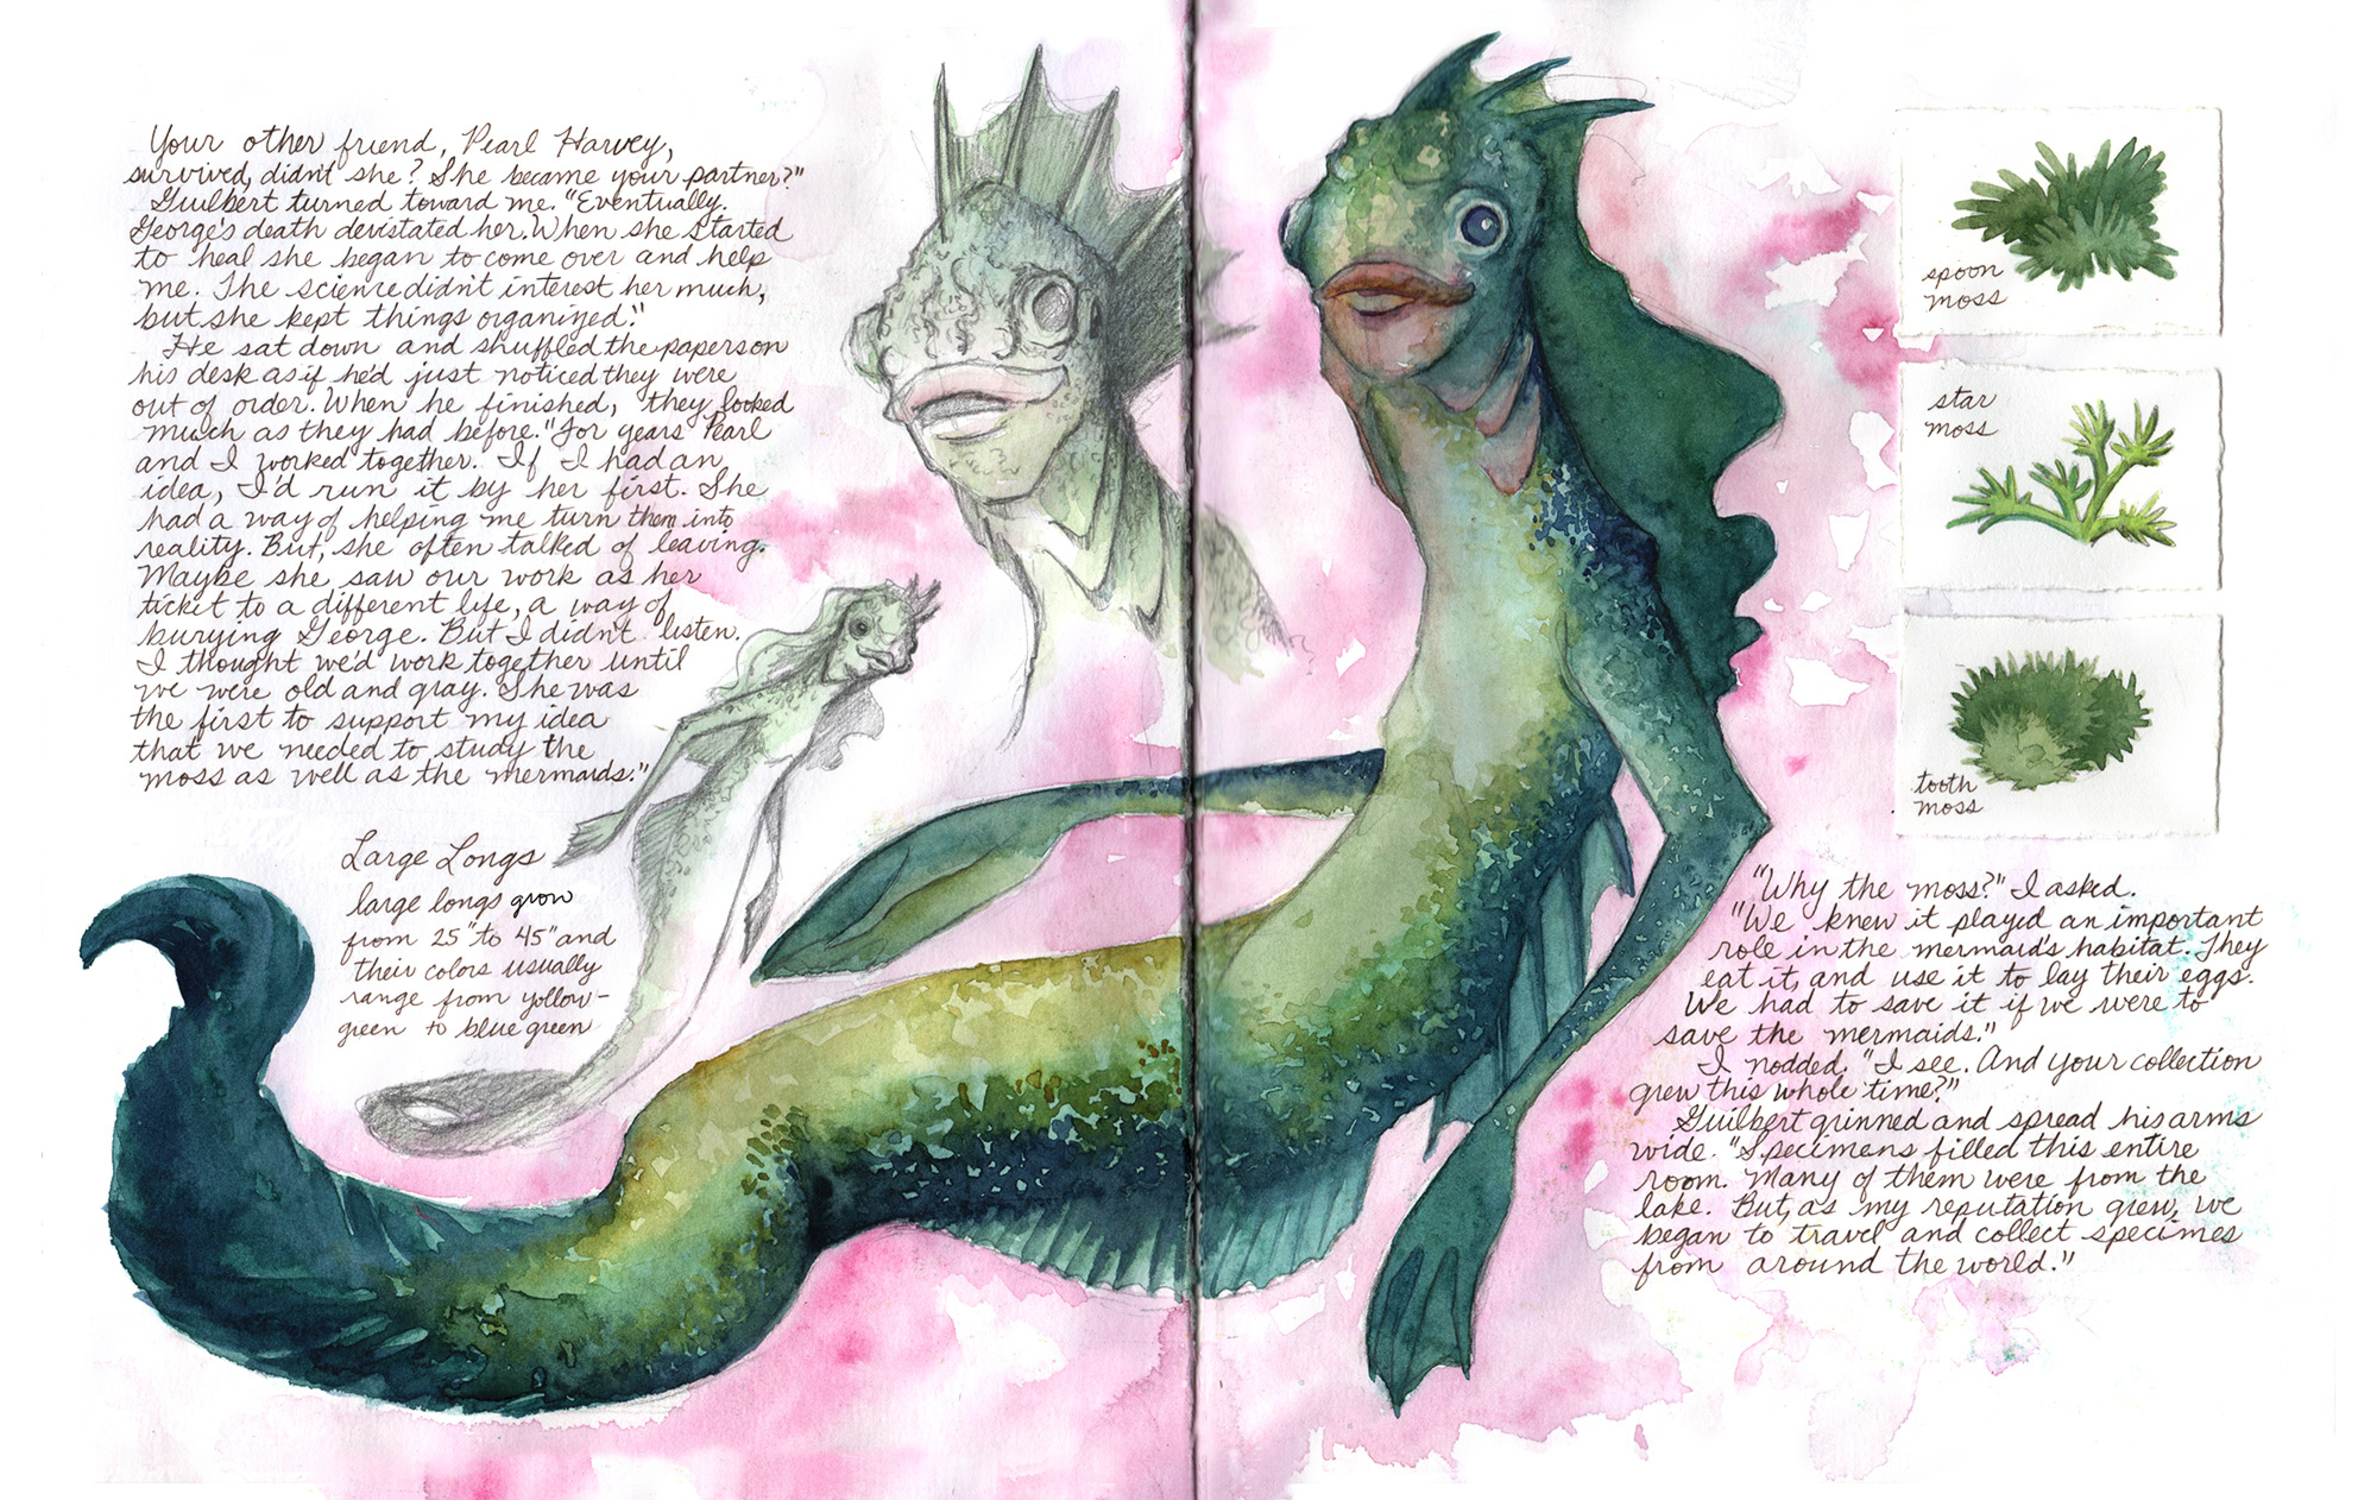 The Marvelous Collection of Alvin Guilbert Page 6-7 Artwork by Manelle Oliphant